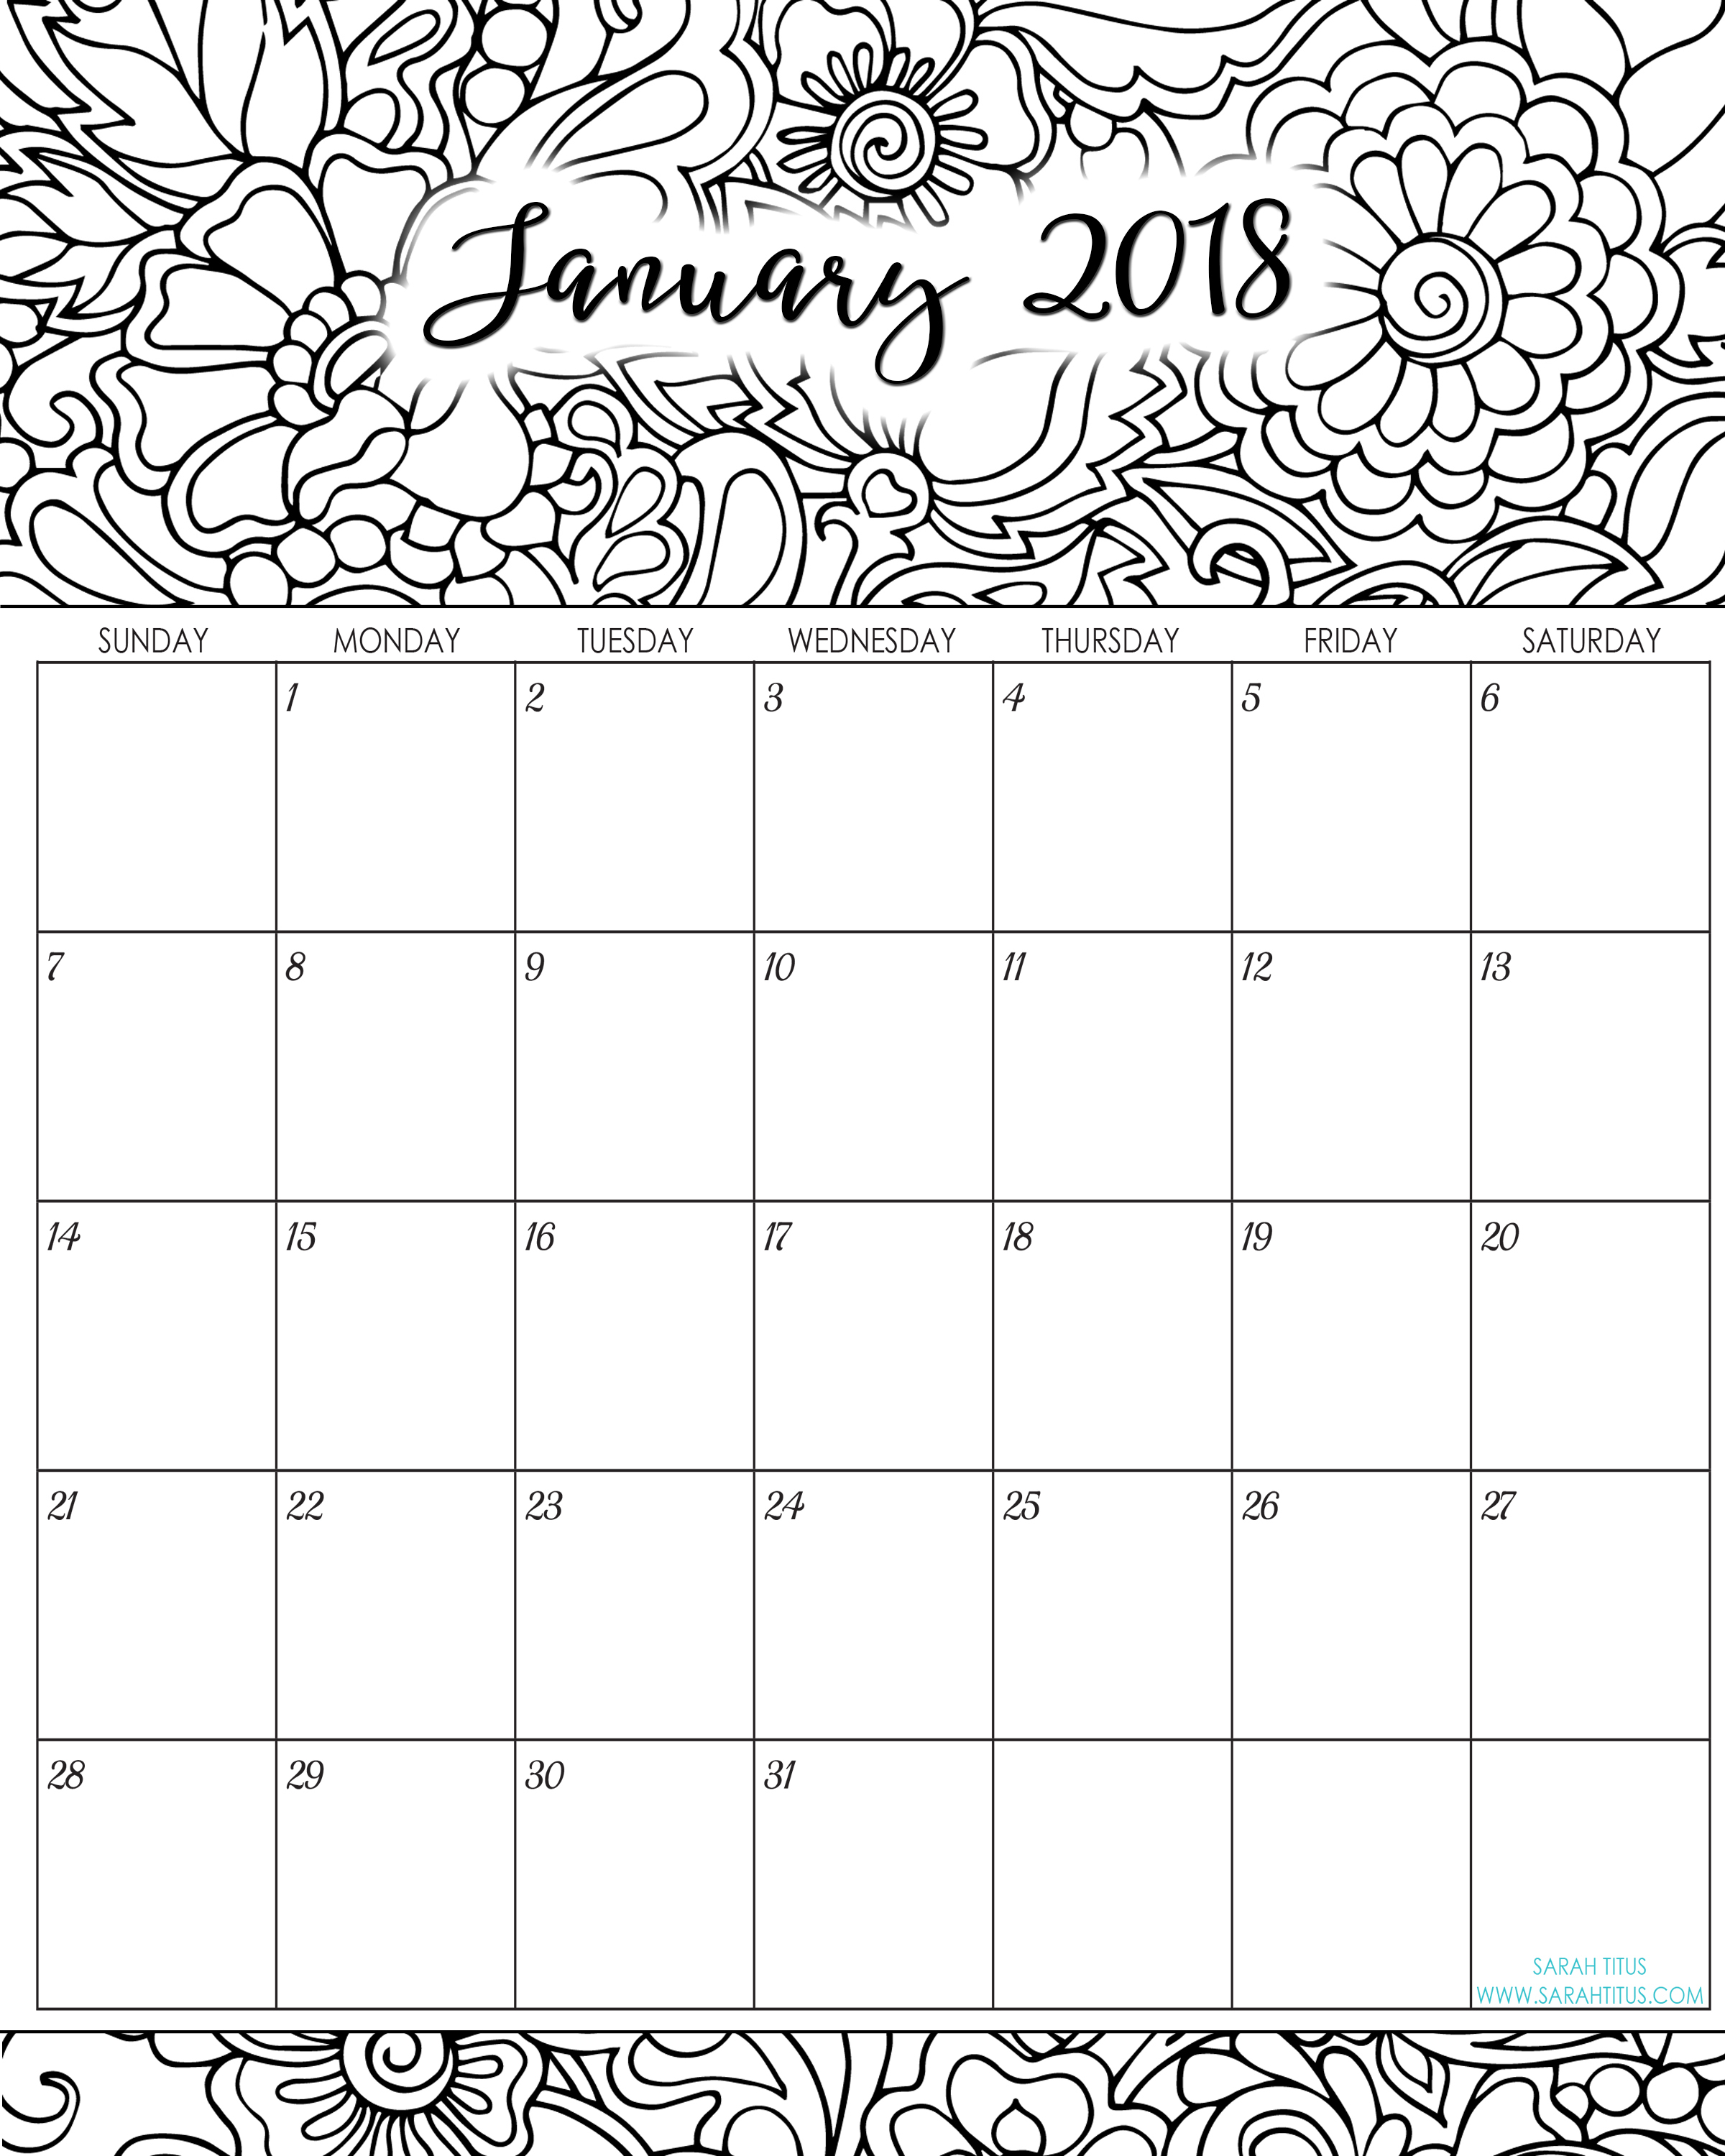 2018 Monthly Coloring Calendars Printables - Sarah Titus with regard to Free Printable Adult October Calendar 2019 Coloring Sheets